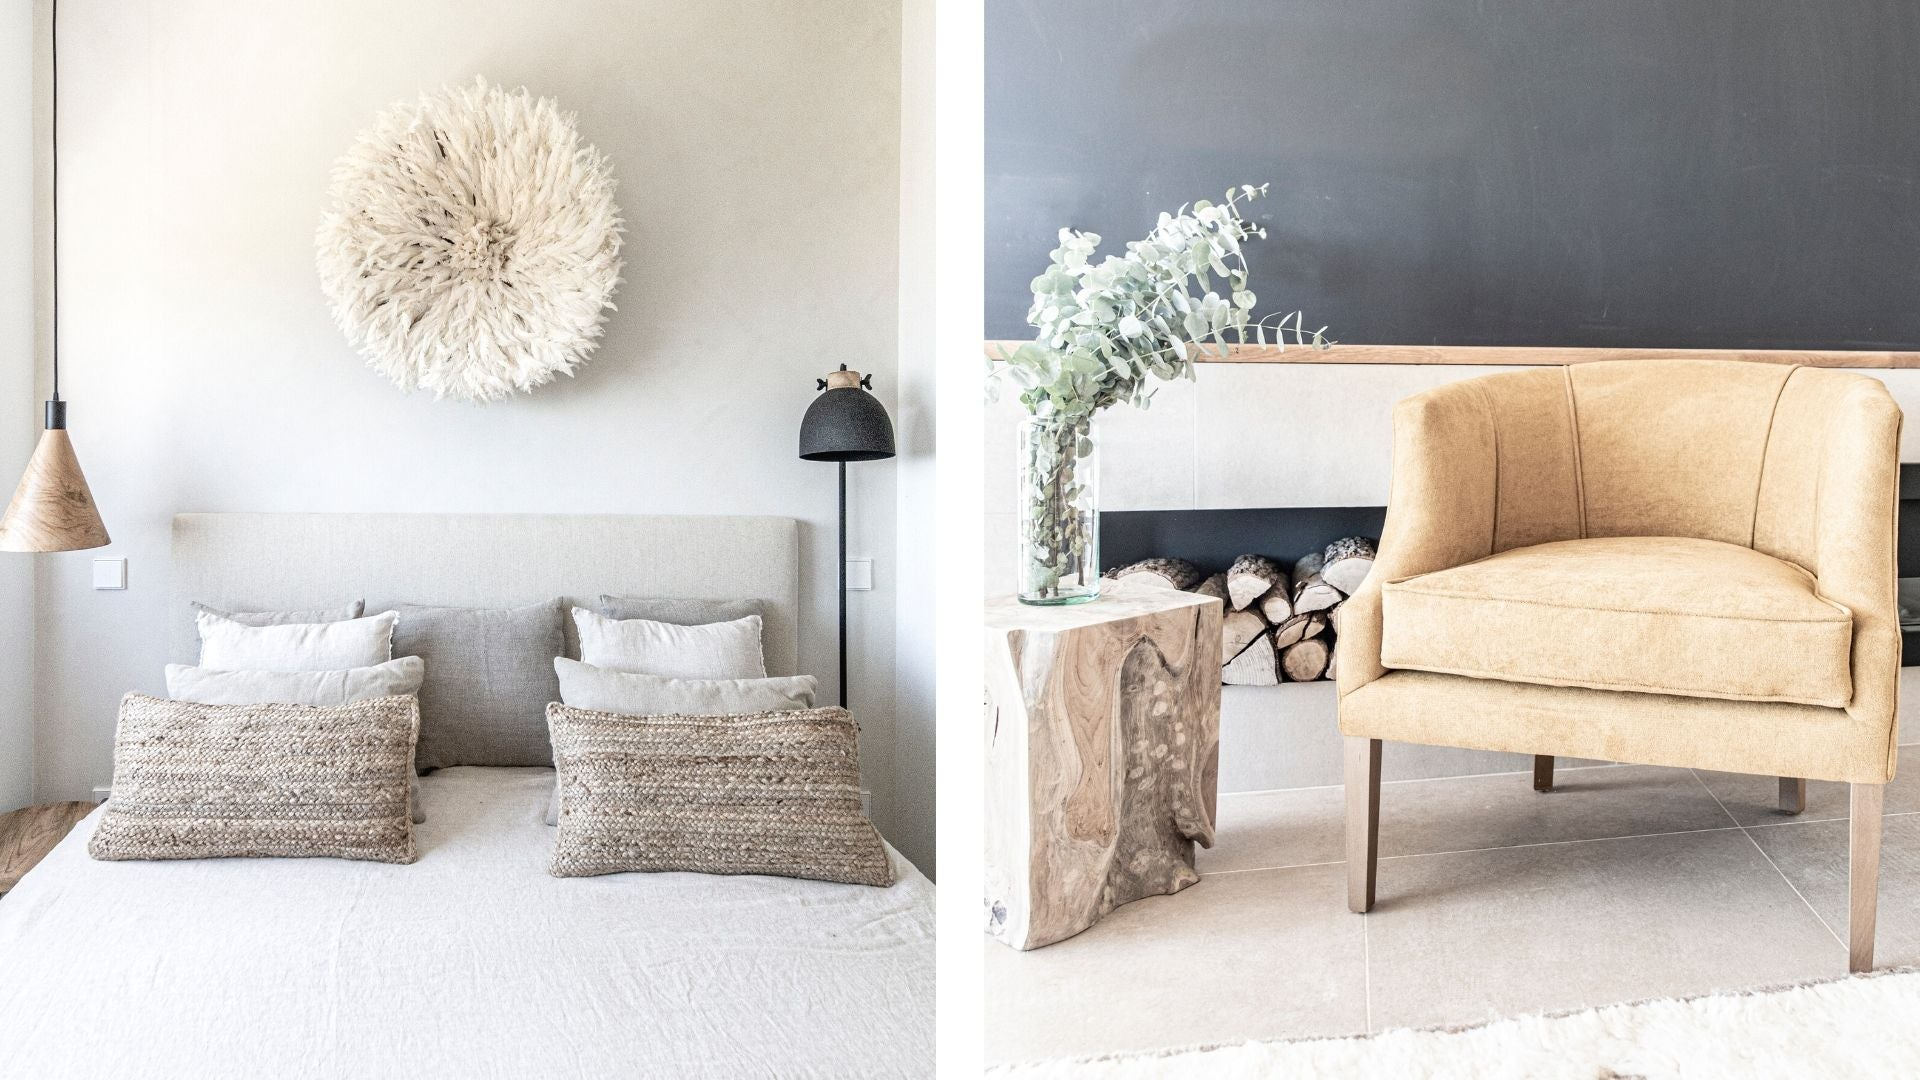 Add a statement piece in your home with wall decor